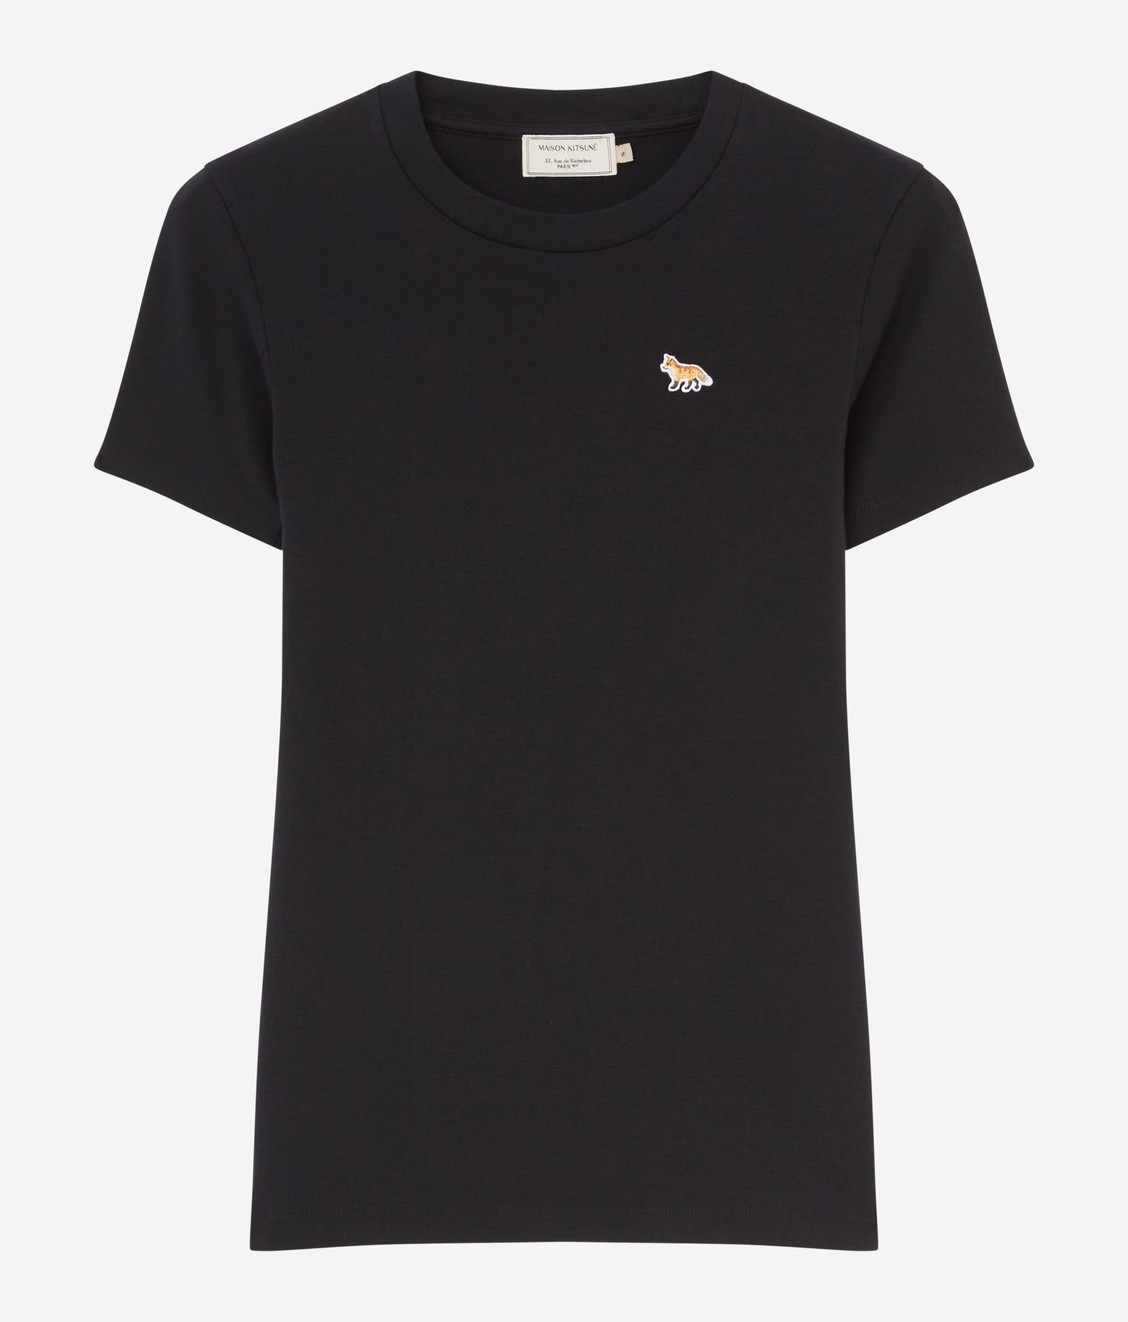 Maison Kitsune Maison Kitsune Tee Shirt Profile Fox Patch Black